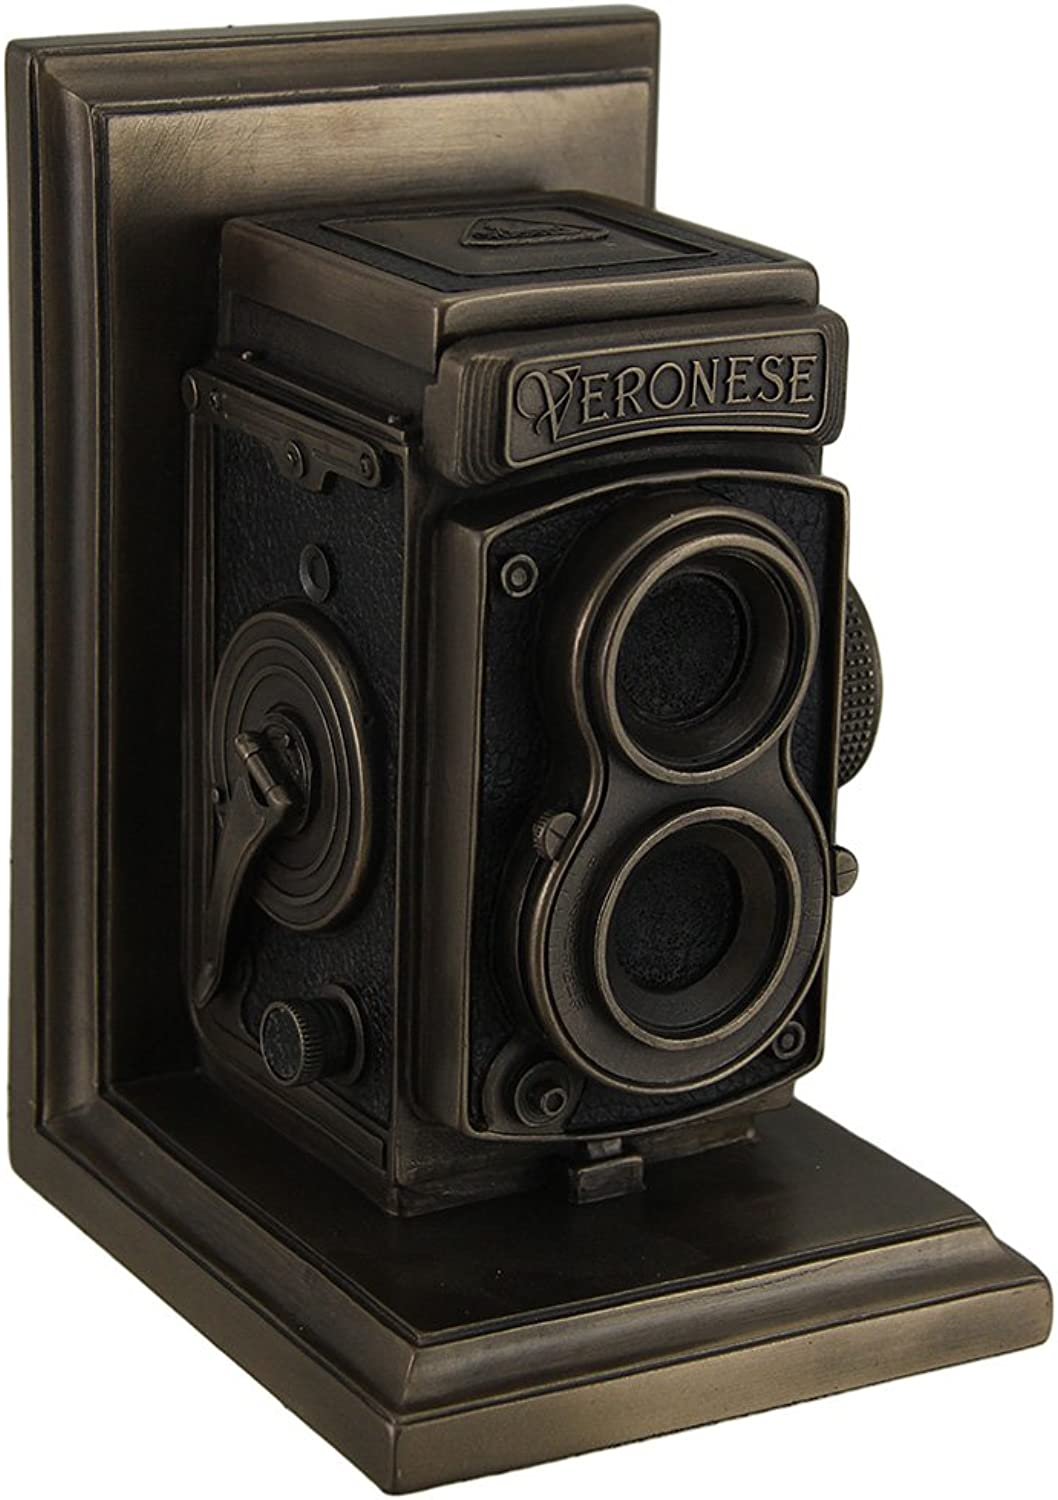 Resin Statues Vintage Tlr Camera Decorative Bronze Finish Single Bookend Statue 5 X 7 X 4.25 Inches Bronze